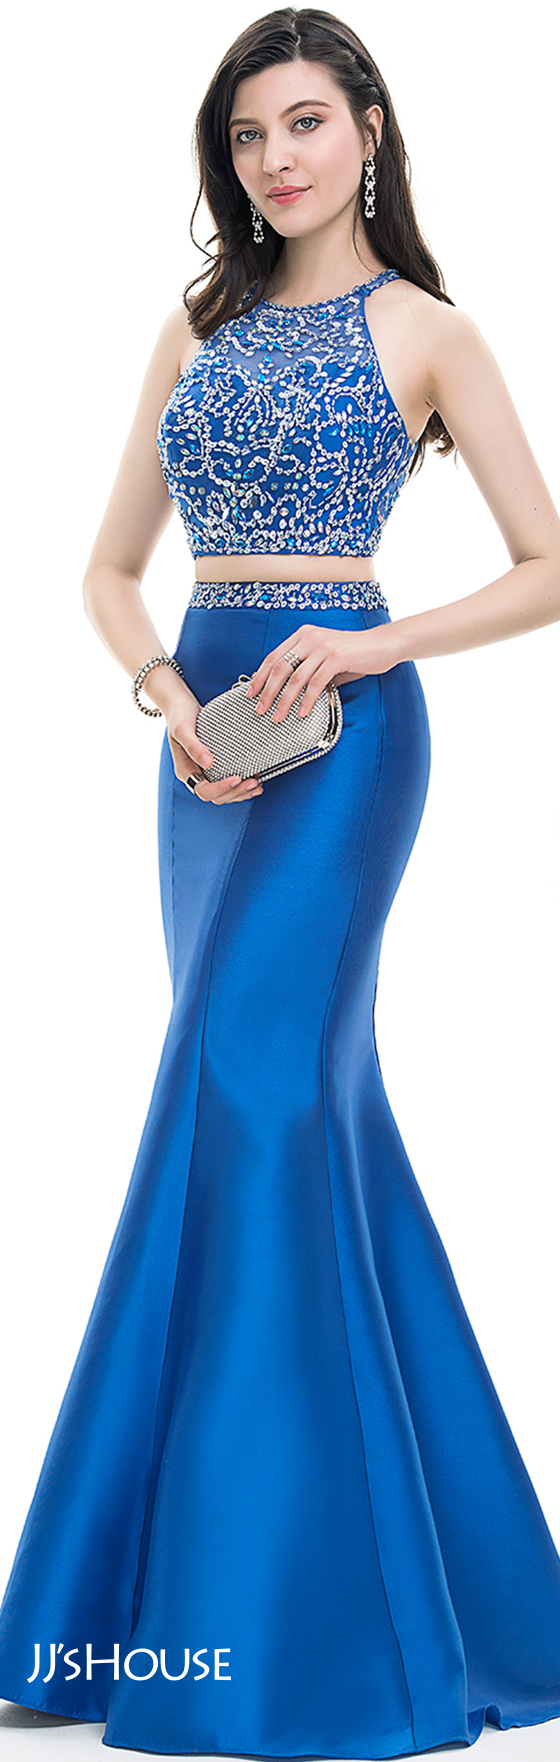 Jjshouse prom abiyeler pinterest prom trumpets and scoop neck